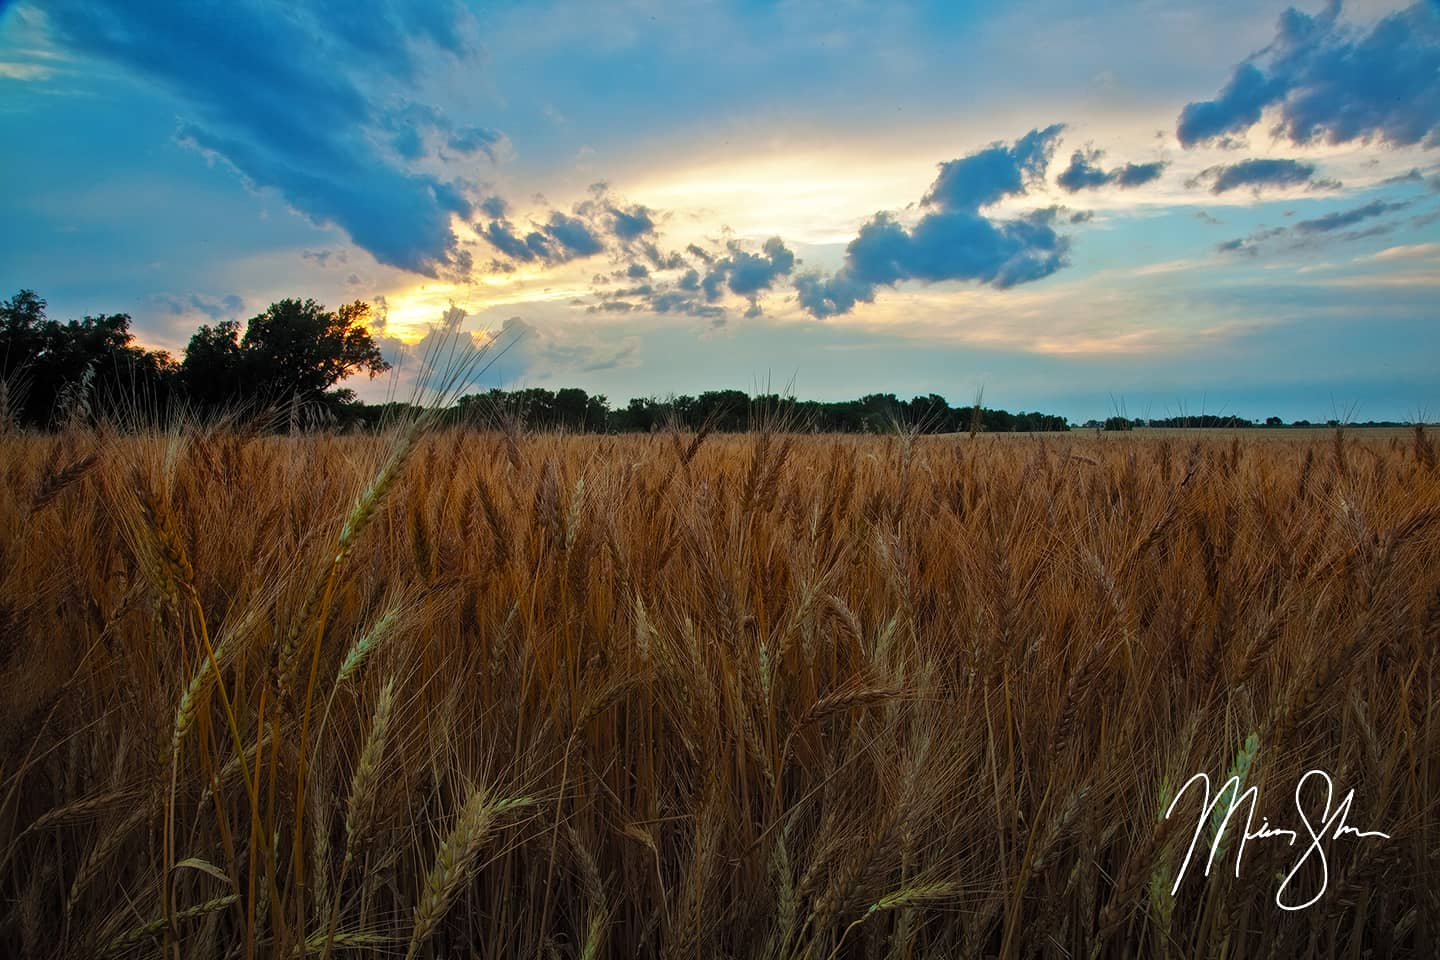 Open edition fine art print of Kansas Wheat and Sunset from Mickey Shannon Photography. Location: Near Wichita, Kansas